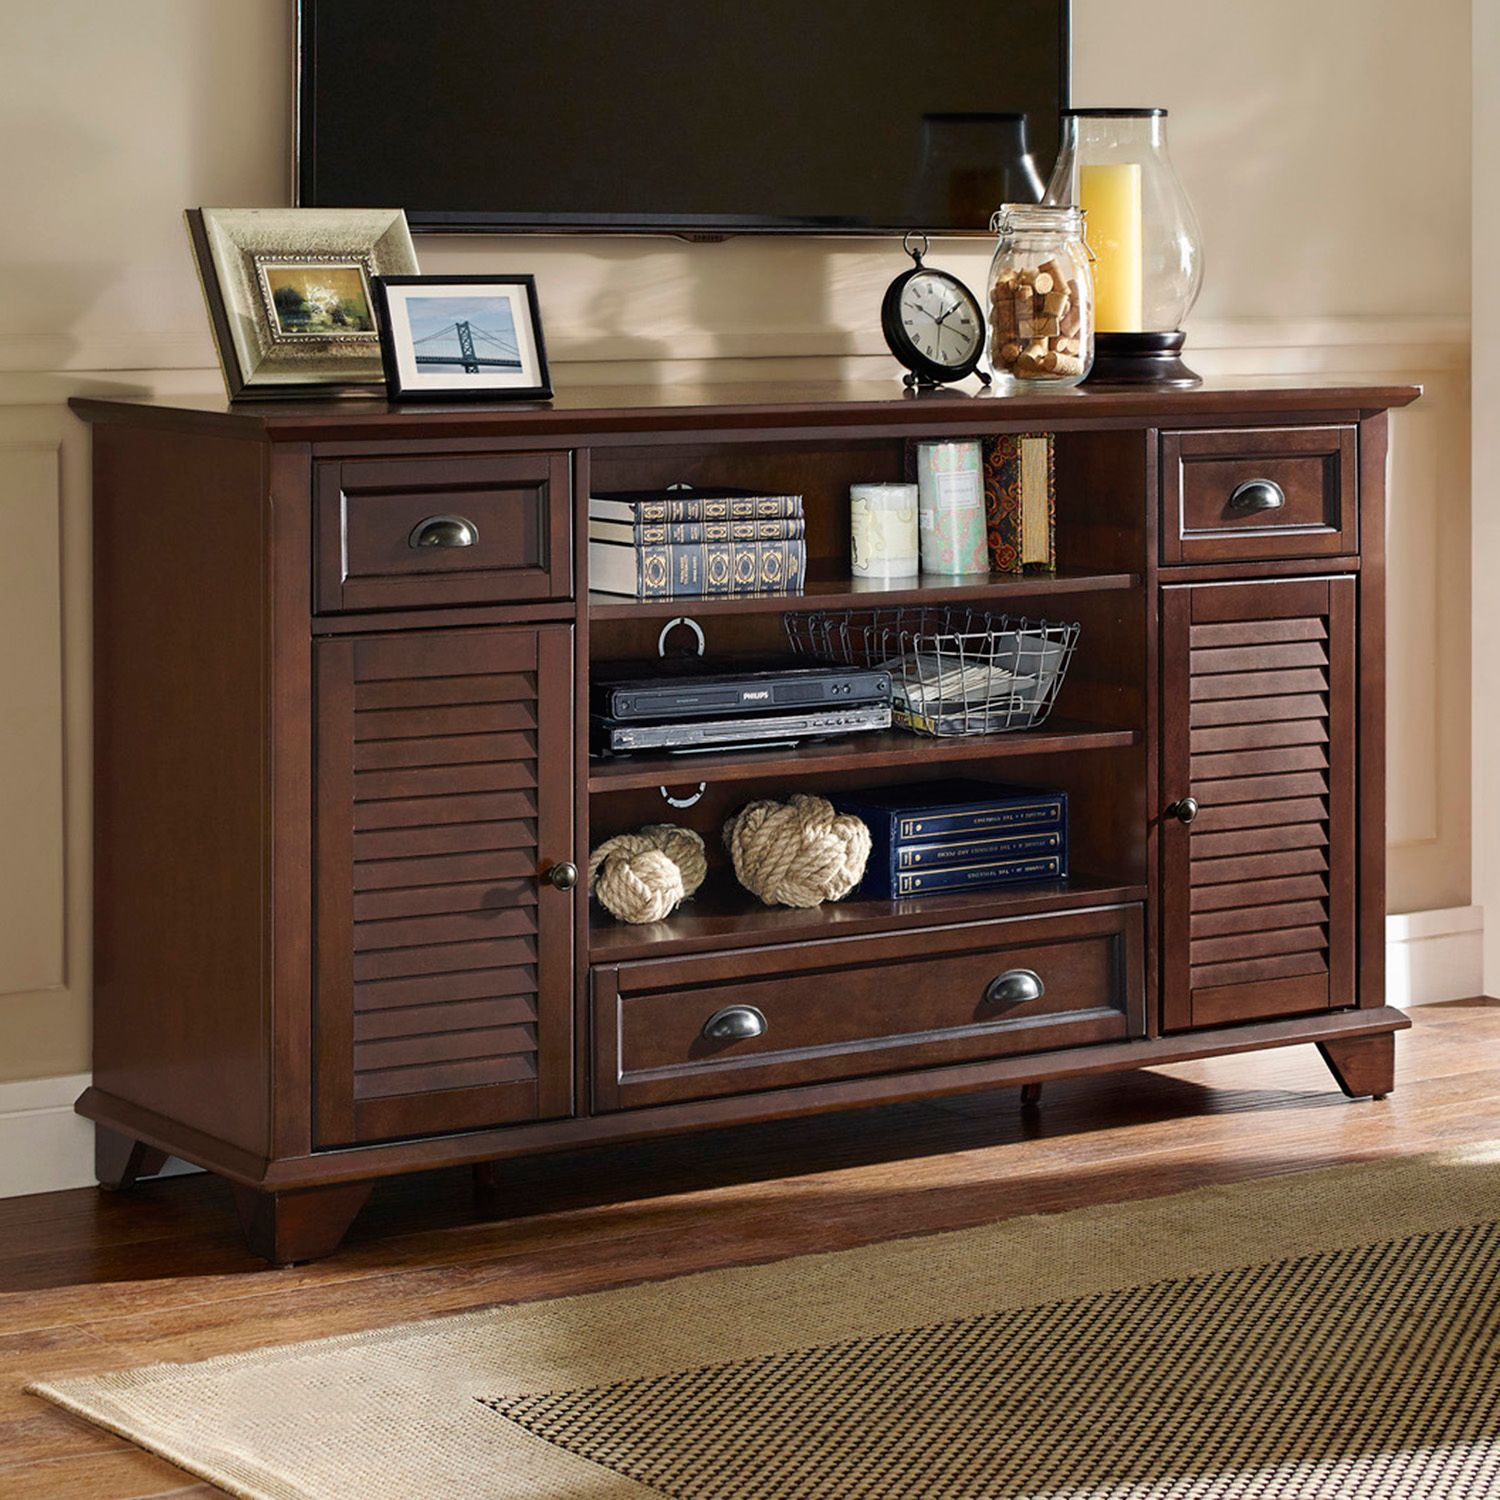 Crosley Furniture Palmetto 60 Inch Full Size TV Stand